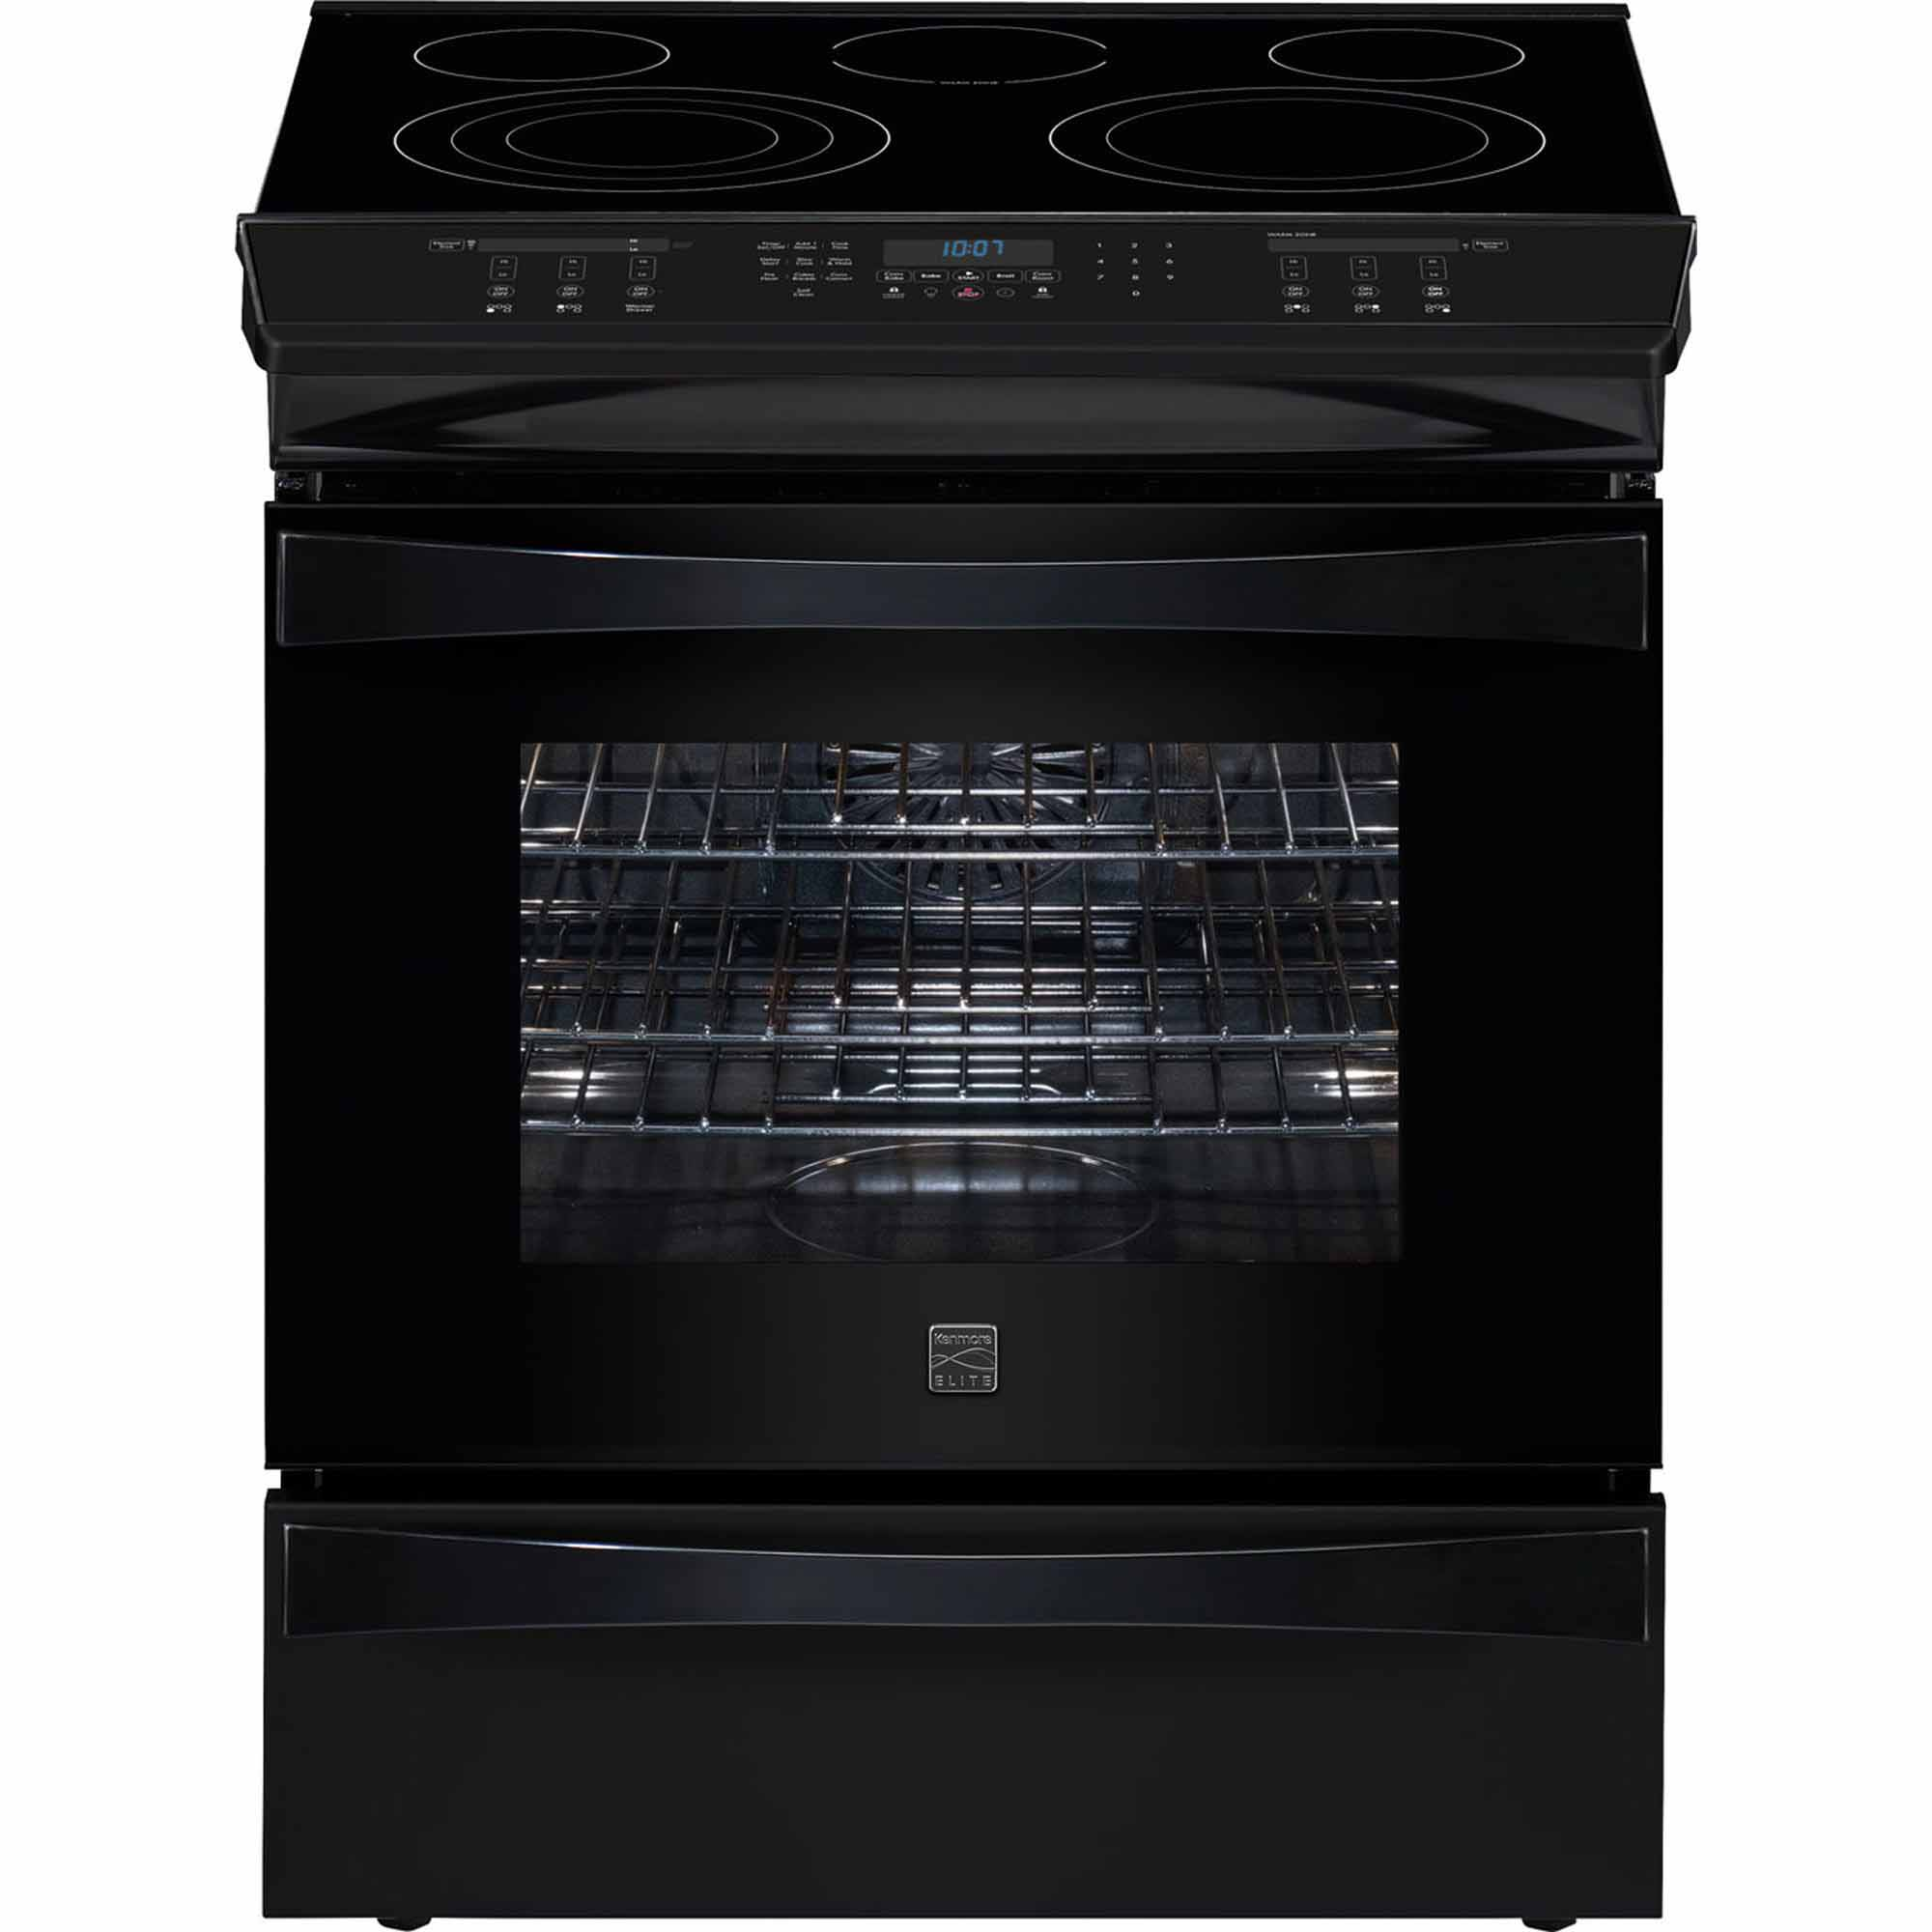 42559-4-6-cu-ft-Slide-In-Electric-Range-w-Convection-Black